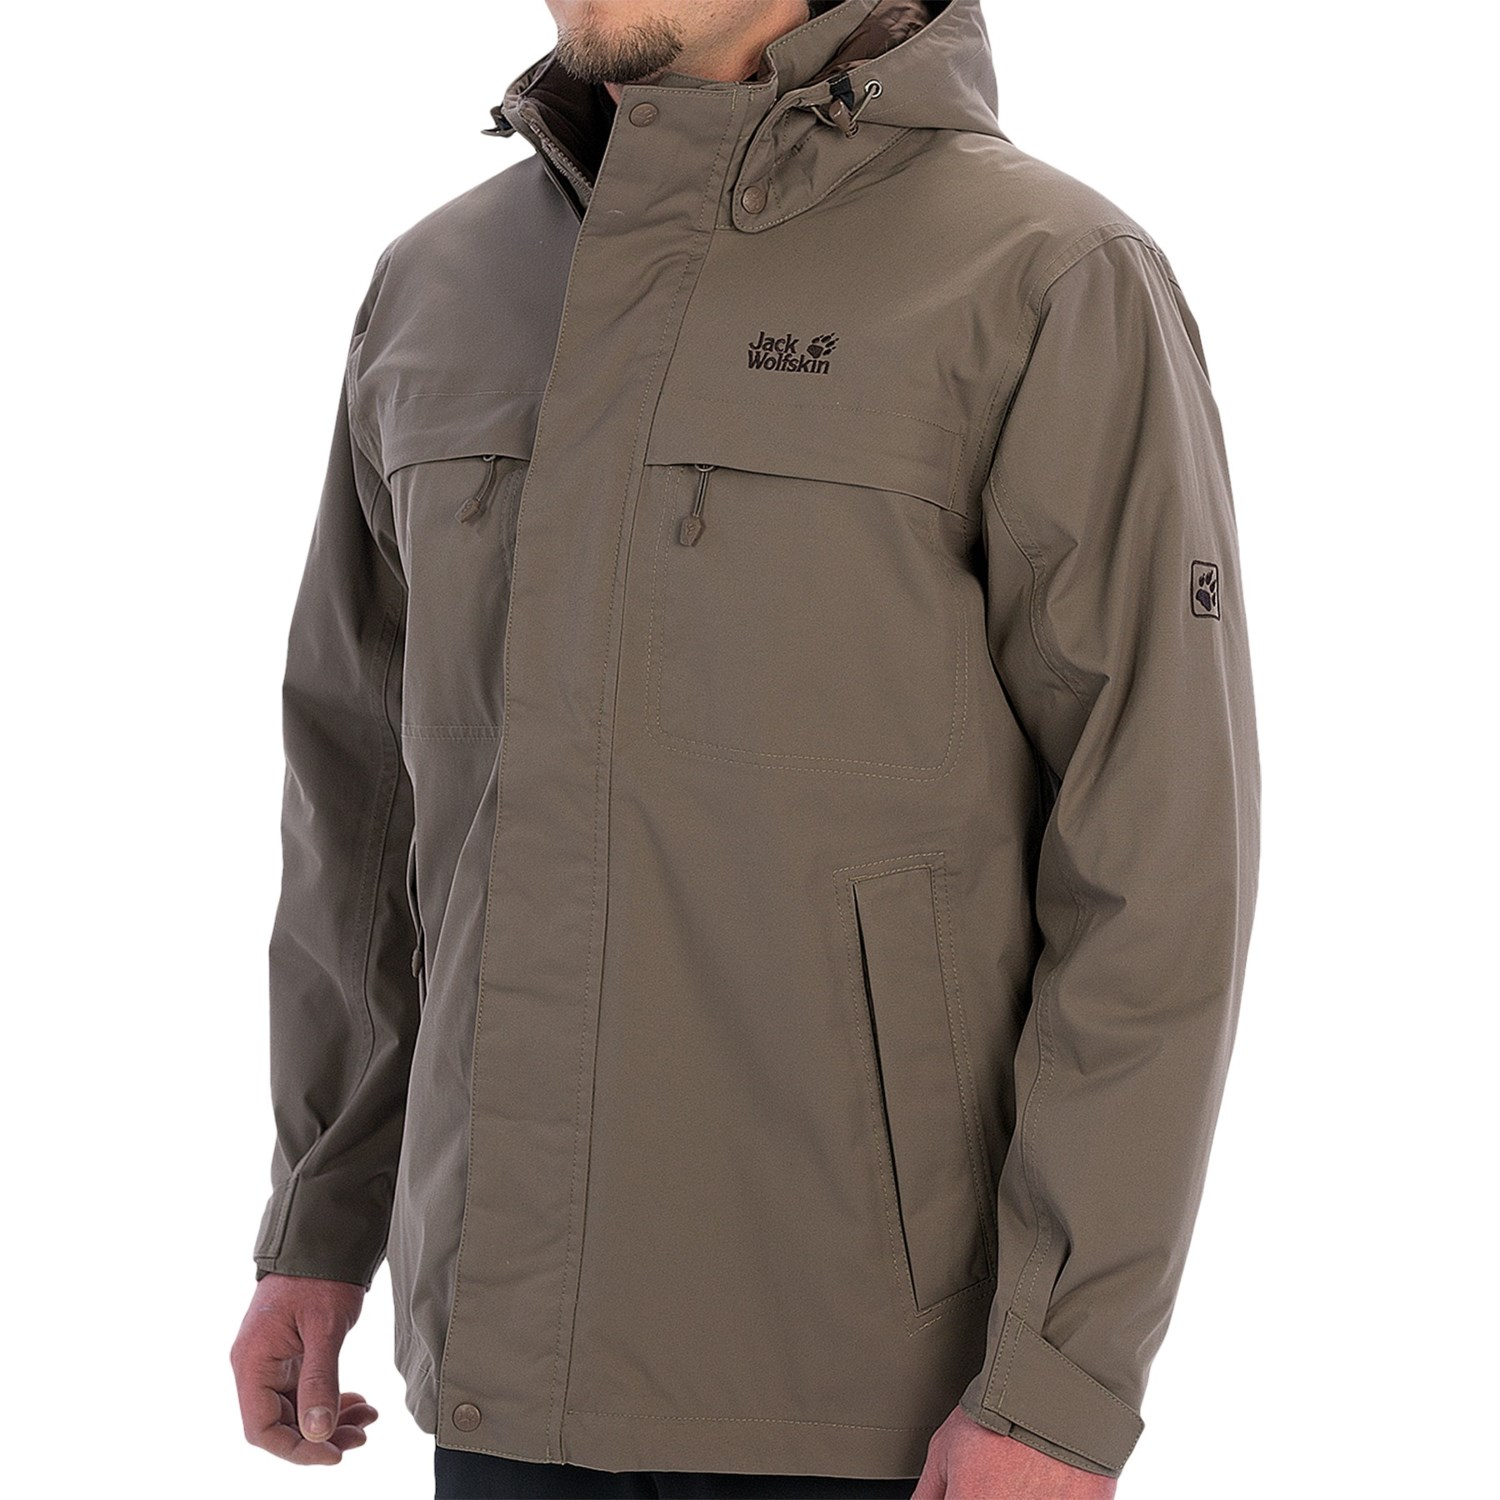 Jack Wolfskin Gravity Flow Texapore Jacket : First Look ...